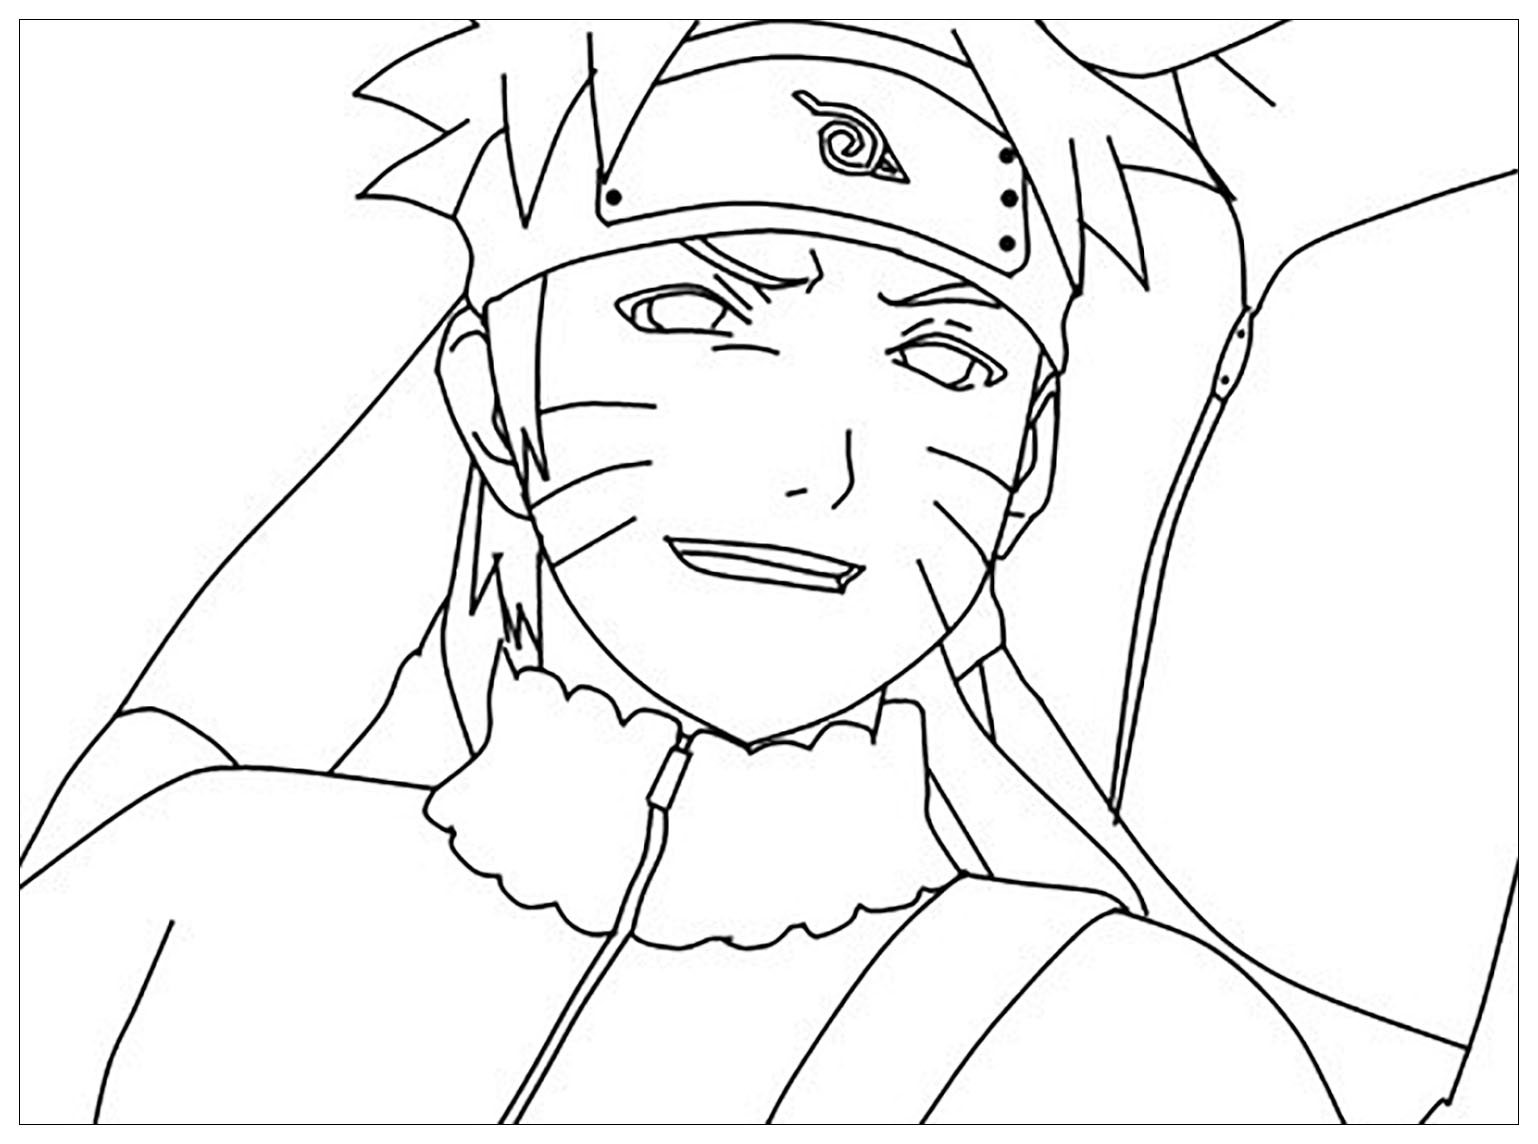 naruto coloring images printable naruto coloring pages to get your kids occupied naruto coloring images 1 1